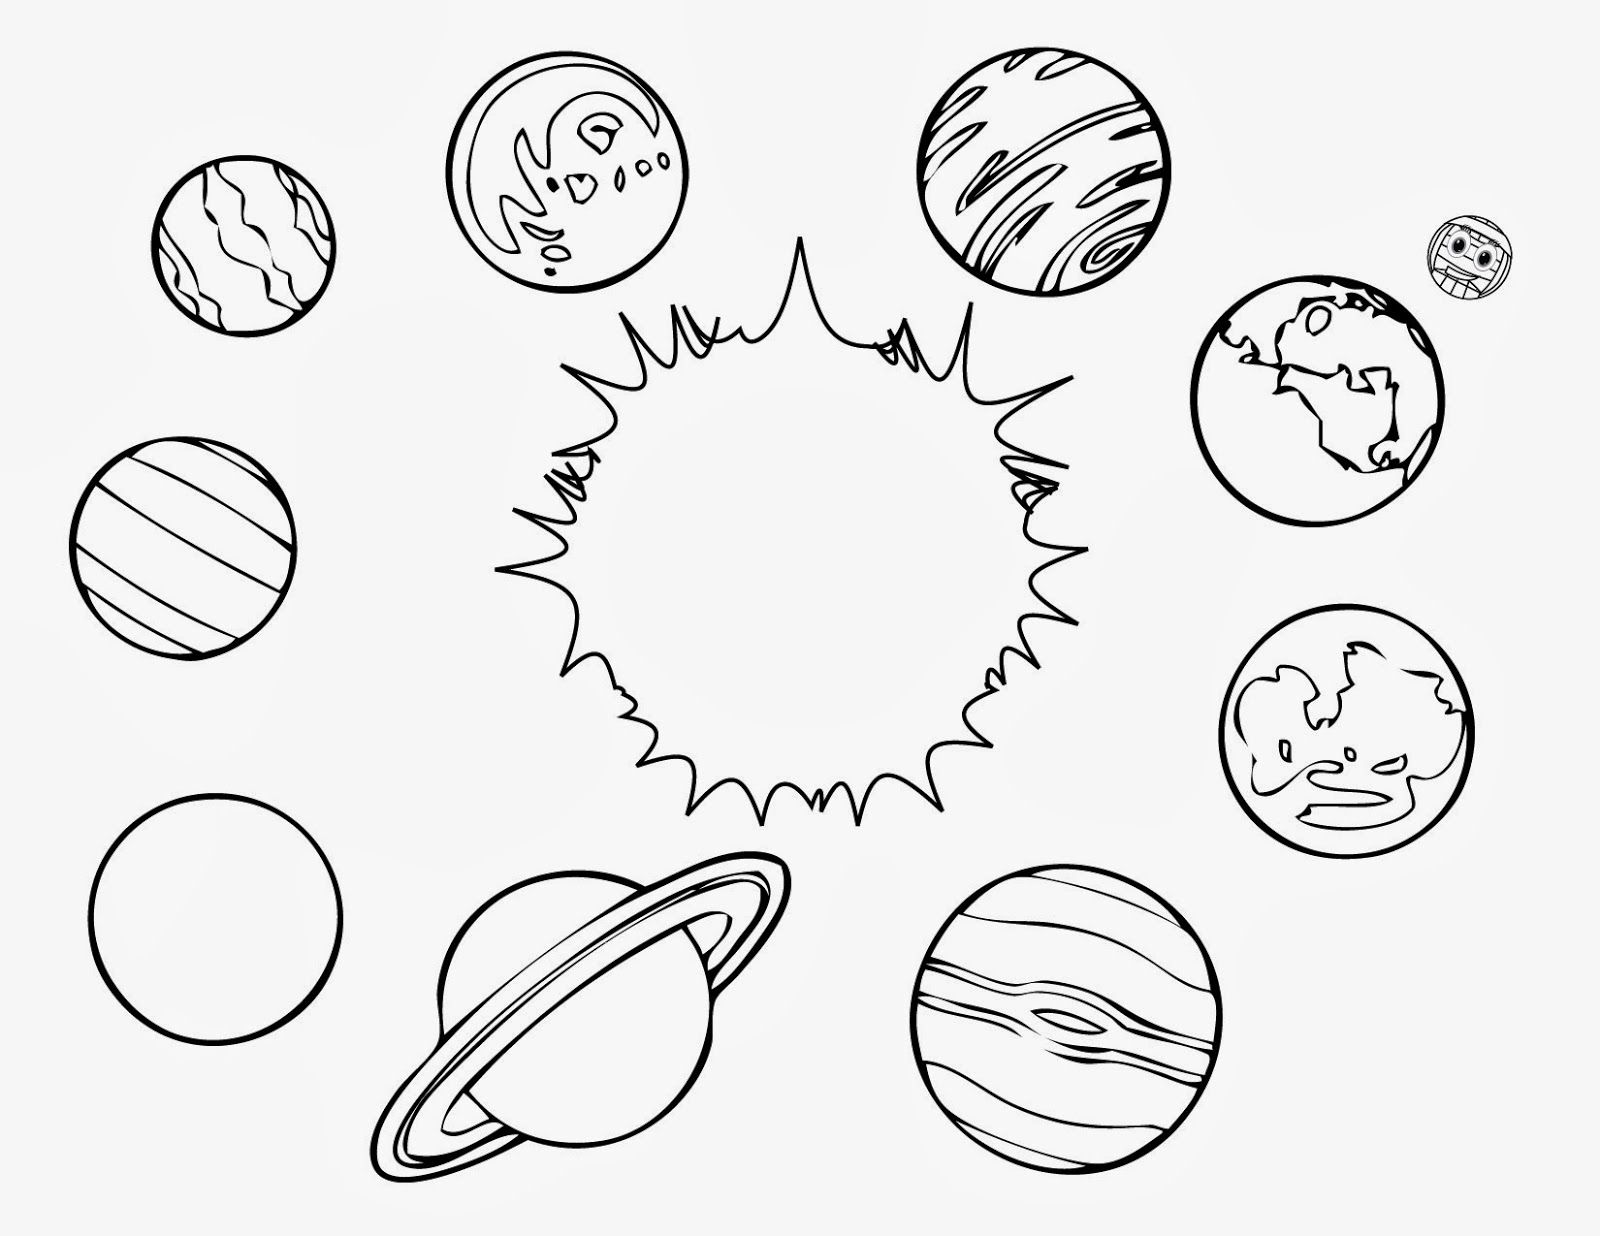 pictures of the planets to color planet coloring pages coloring pages to download and print the of to planets color pictures